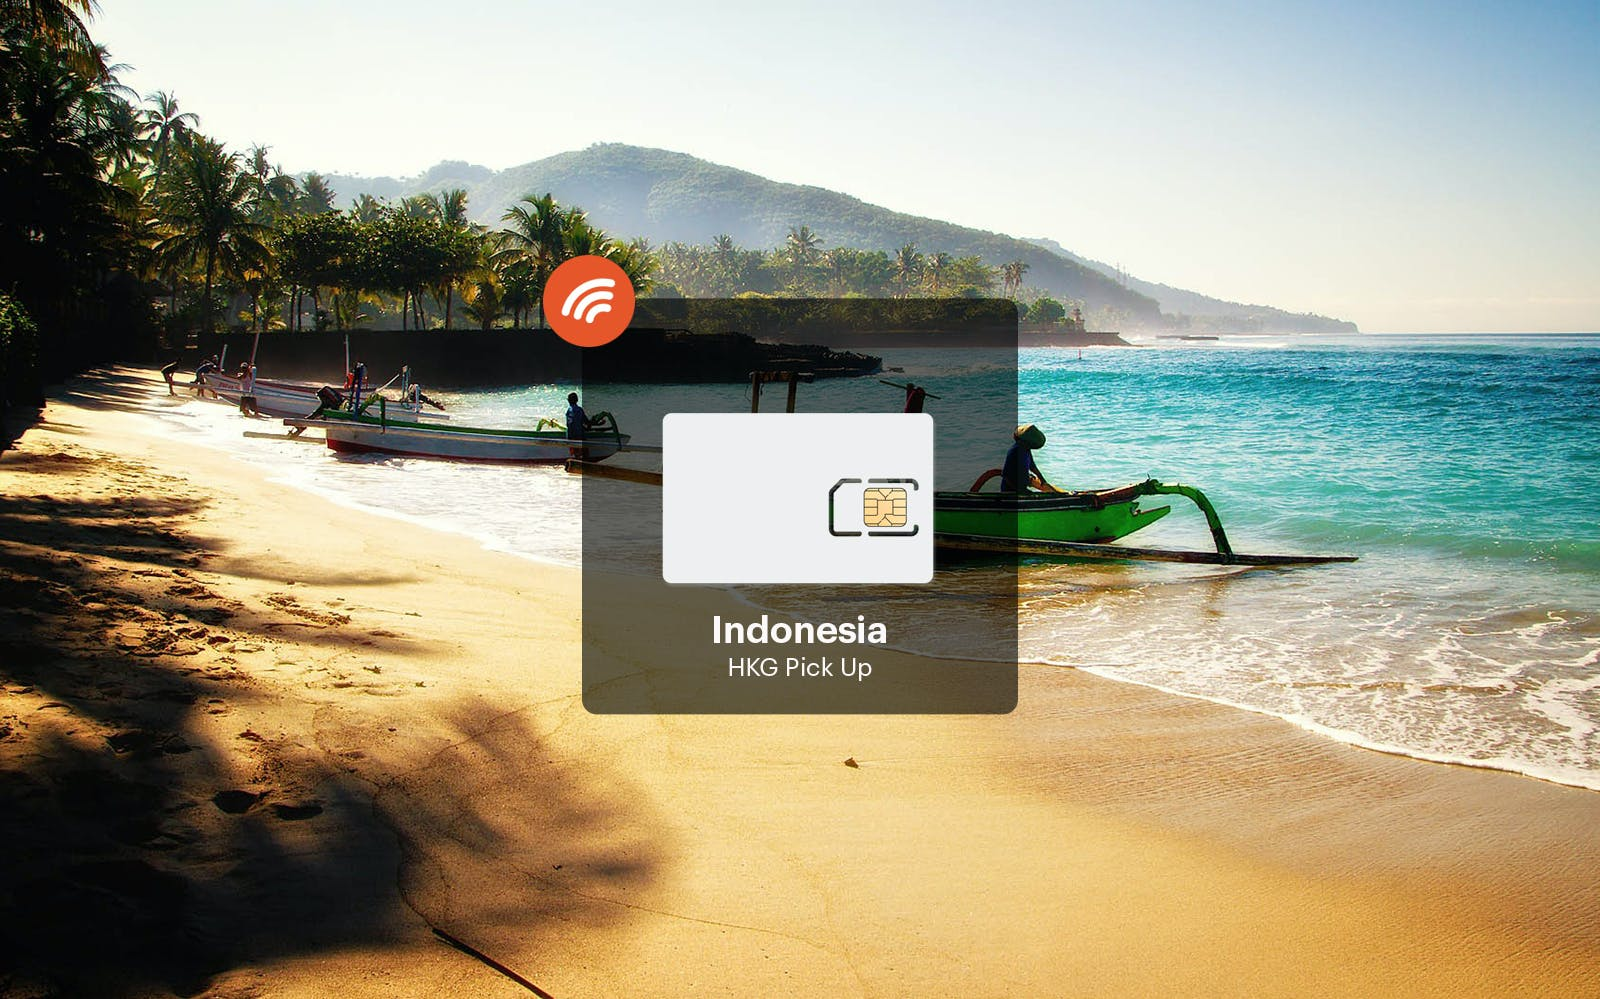 Indonesia 4G Unlimited Data Pick Up From Hong Kong